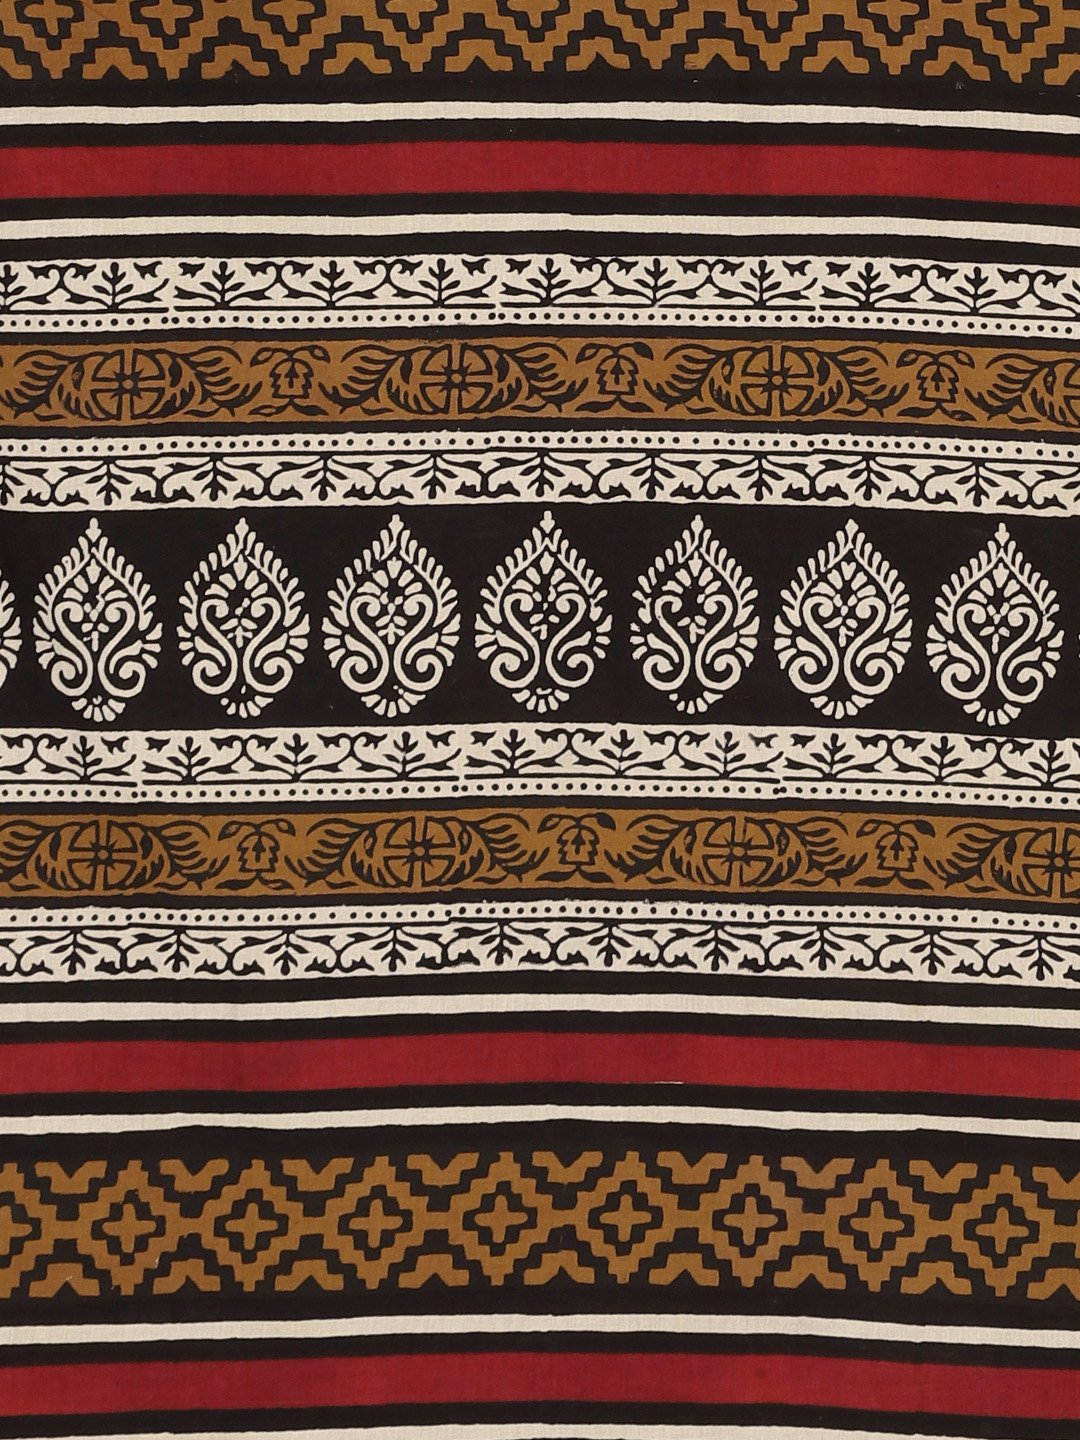 Off-White & Black Bagh Hand Block Print Handcrafted Saree-Saree-Kalakari India-BHKPSA0028-Cotton, Dabu, Geographical Indication, Hand Blocks, Hand Crafted, Heritage Prints, Indigo, Natural Dyes, Sarees, Sustainable Fabrics-[Linen,Ethnic,wear,Fashionista,Handloom,Handicraft,Indigo,blockprint,block,print,Cotton,Chanderi,Blue, latest,classy,party,bollywood,trendy,summer,style,traditional,formal,elegant,unique,style,hand,block,print, dabu,booti,gift,present,glamorous,affordable,collectible,Sari,Sare